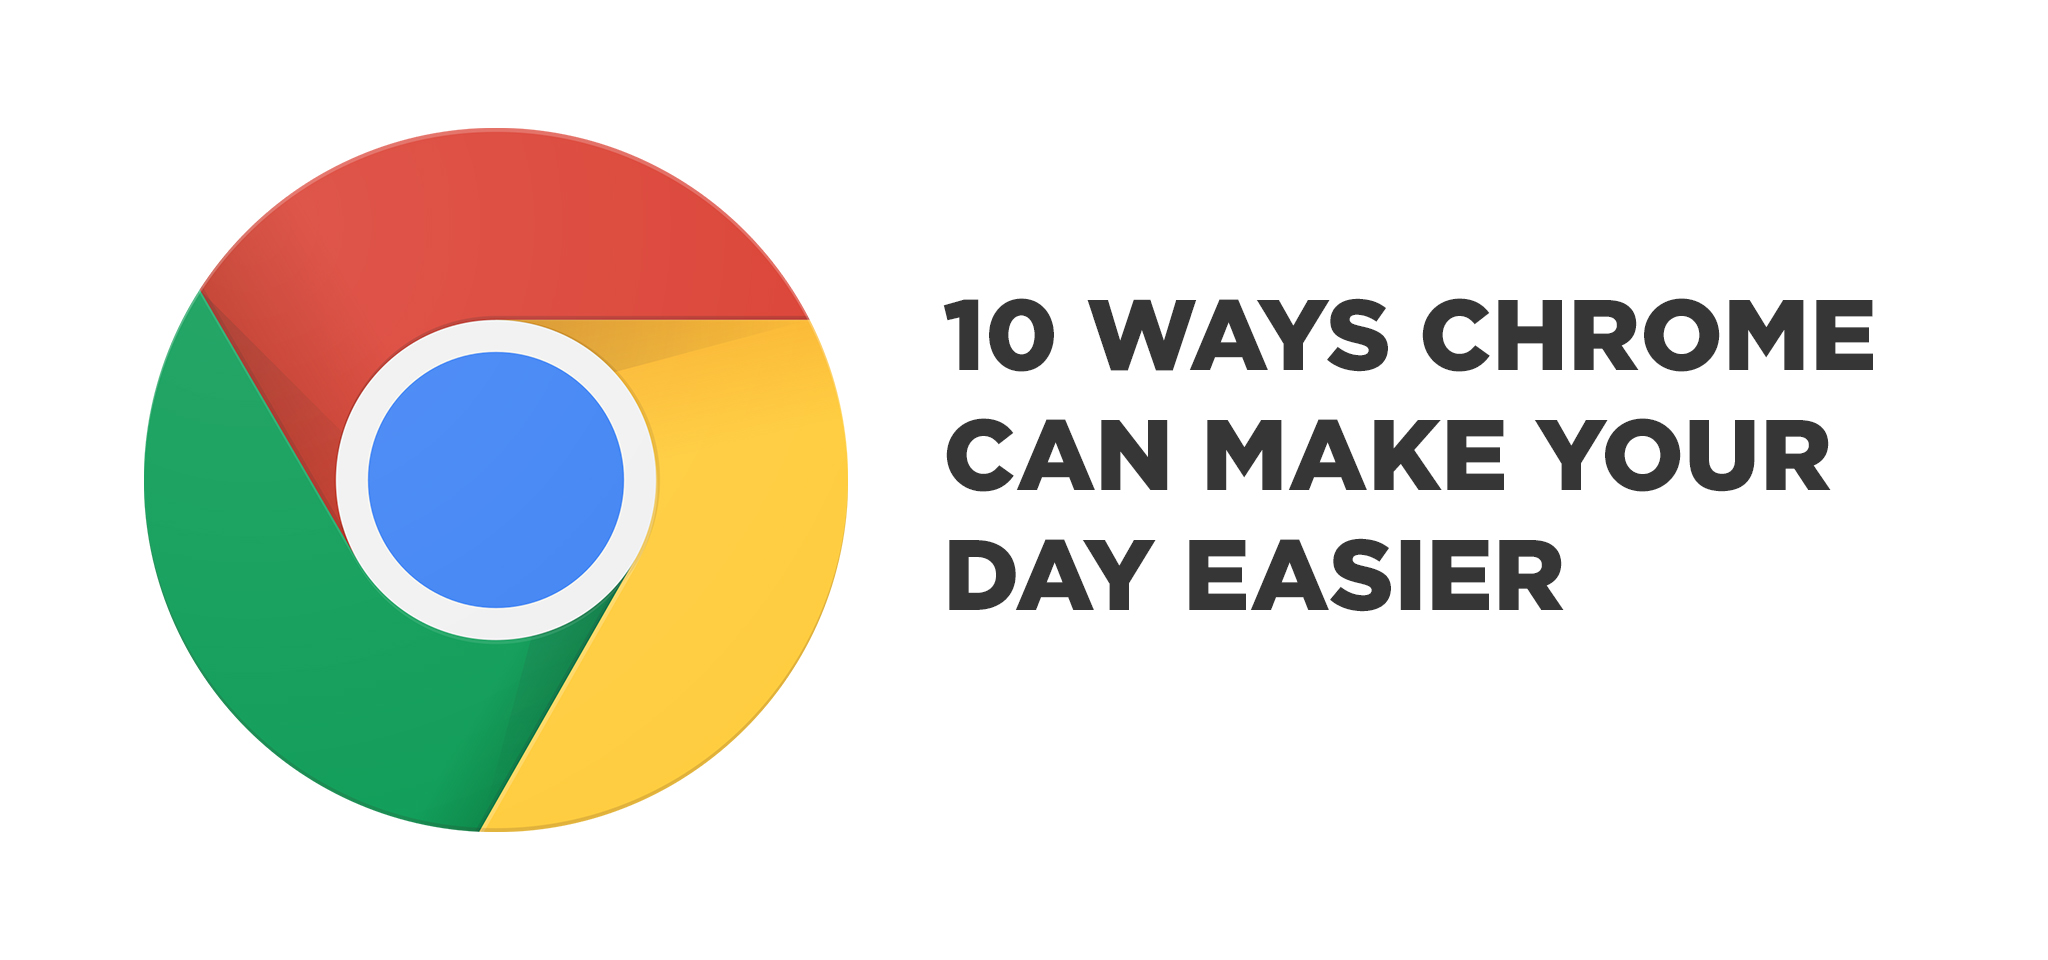 10 tips to making Google Chrome easier to use